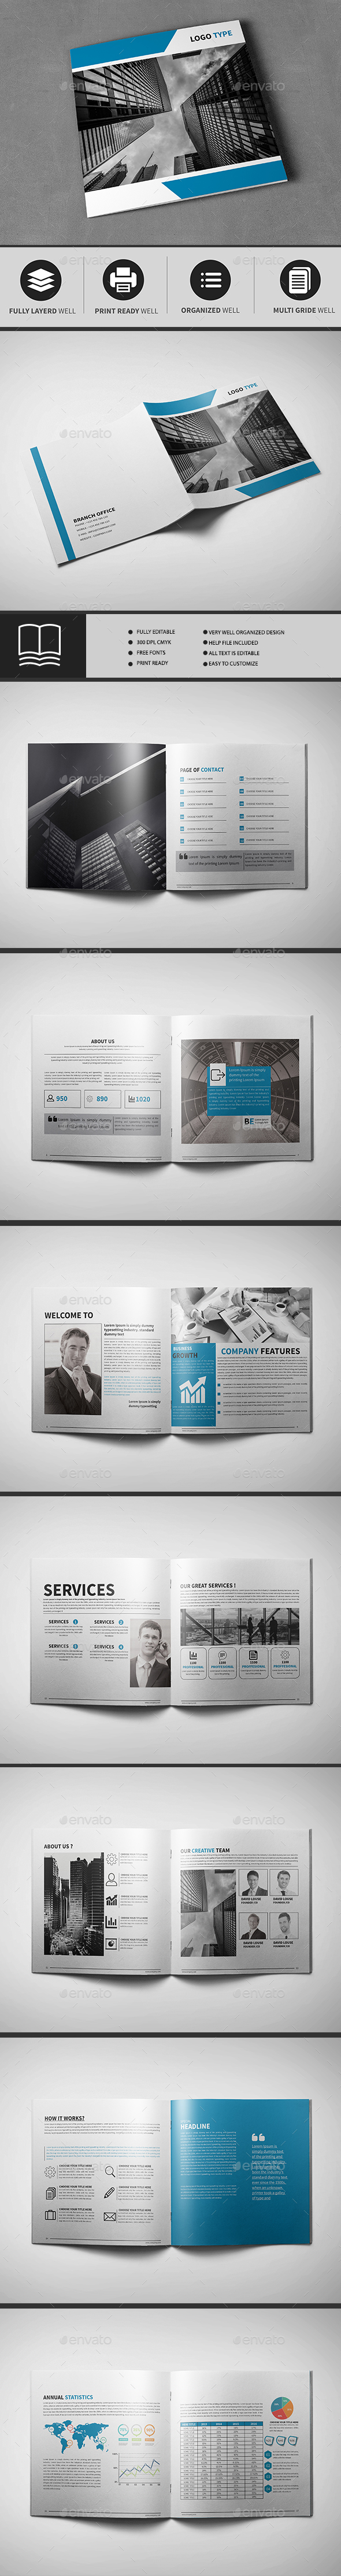 Corporate Business Square Brochure - Brochures Print Templates